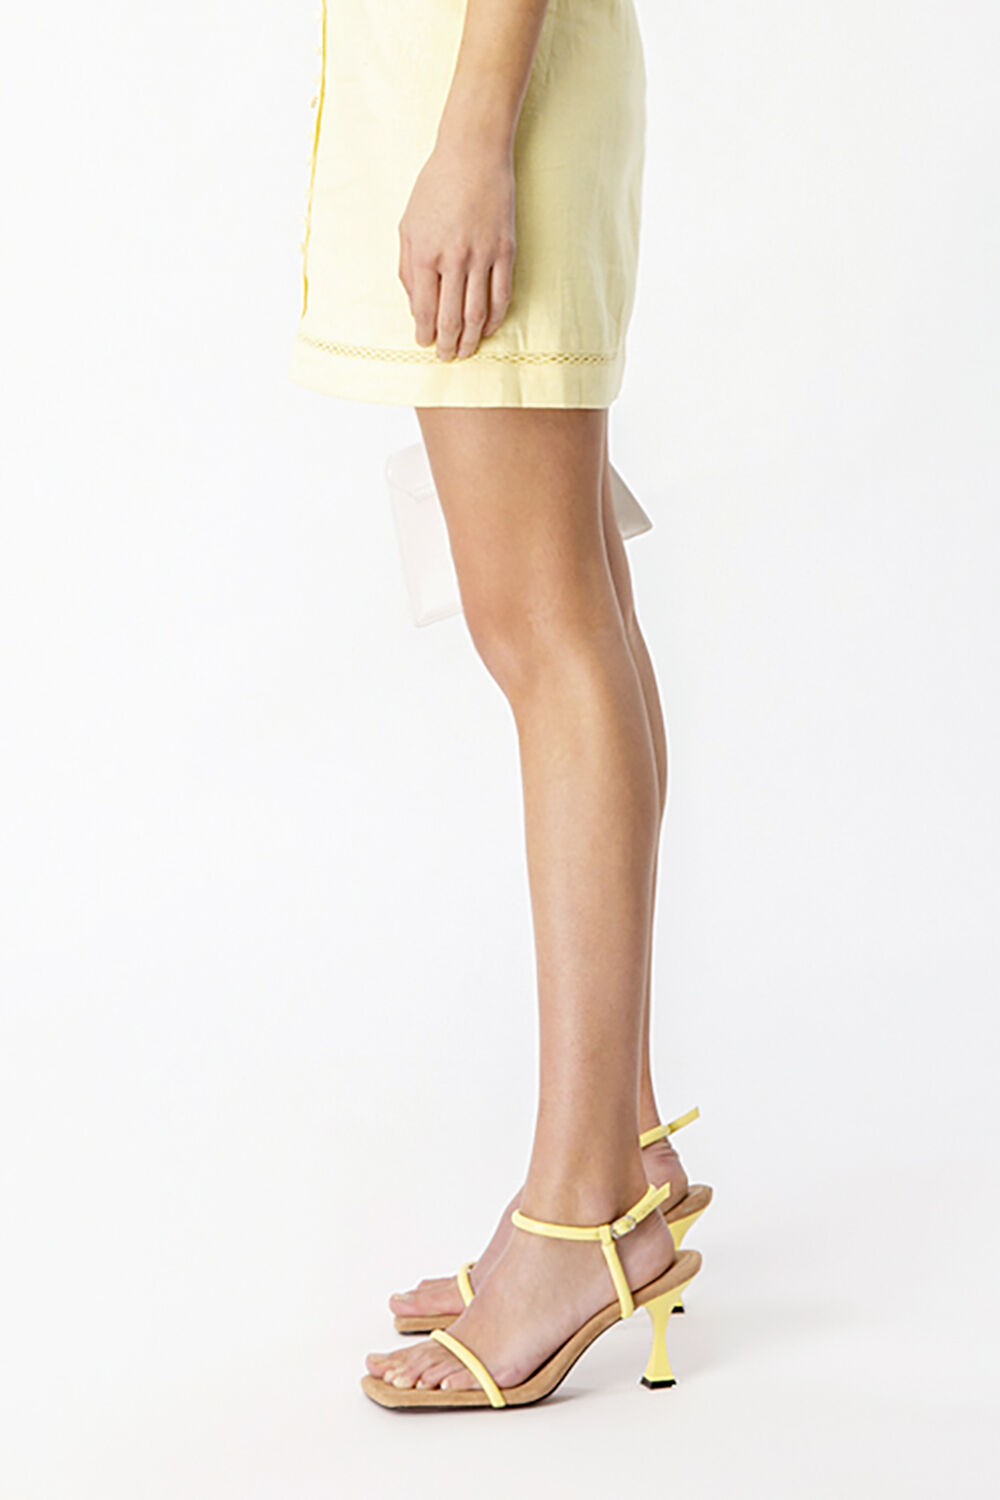 MILA STRAPPY HEEL in colour TRANSPARENT YELLOW